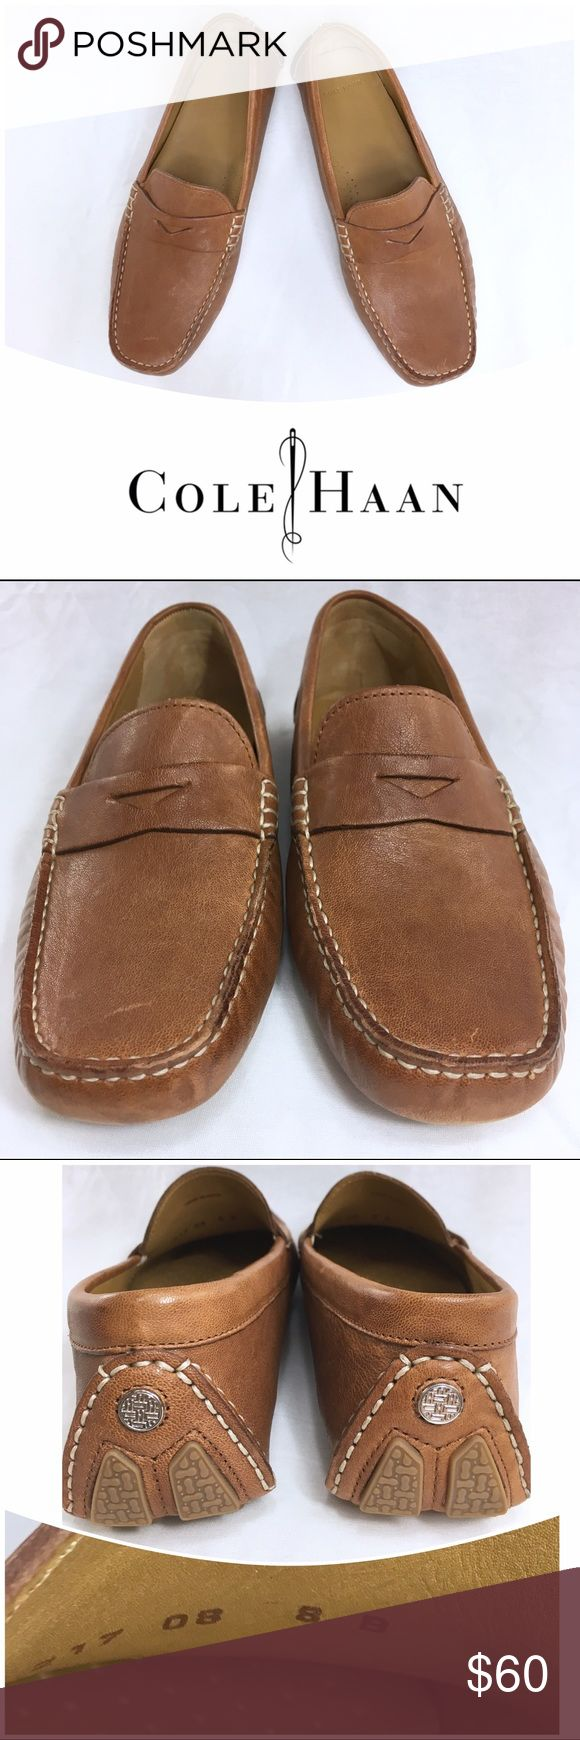 COLE HAAN TAN LEATHER DRIVING LOAFERS - Size 8 These leather loafers are in great condition. They have been gently pre-loved. They are size 8B. Cole Haan Shoes Flats & Loafers